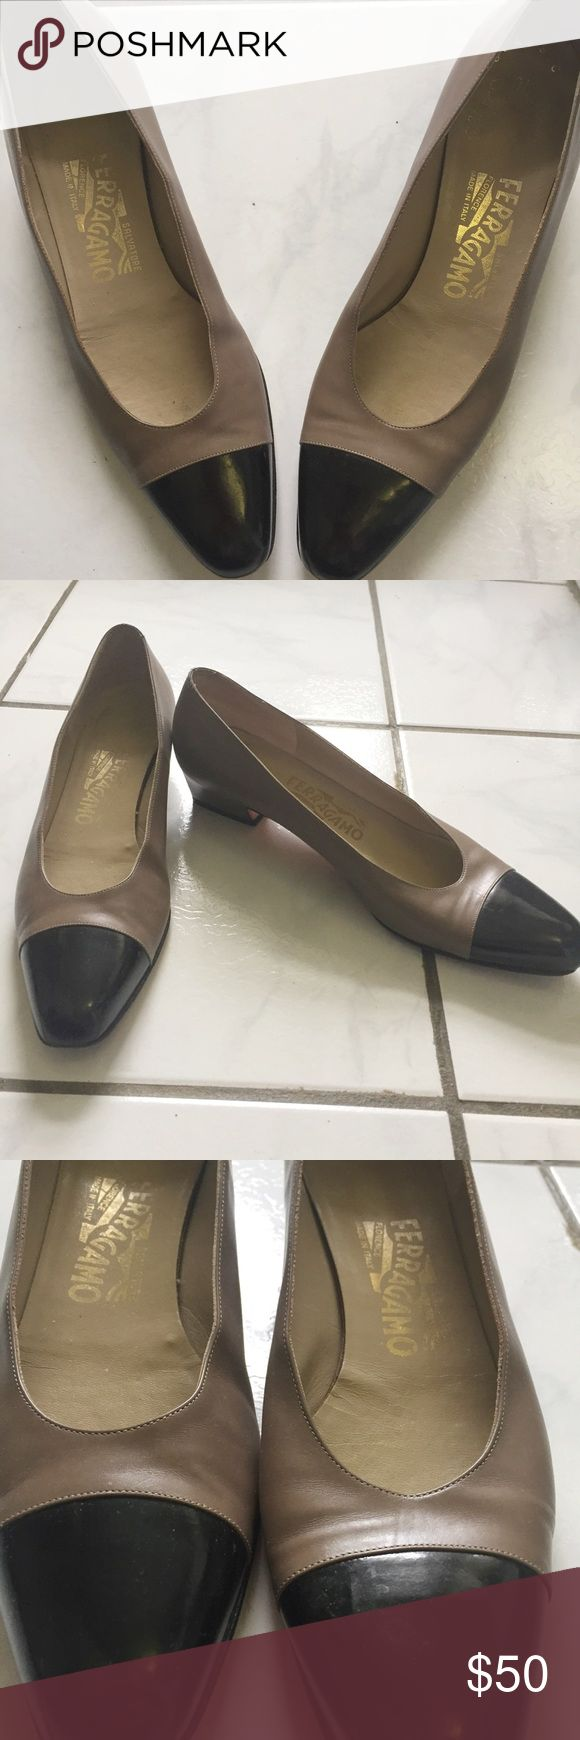 Gorgeous Salvatore Ferragamos Shoes! Small heels, gorgeous vintage shoes! Black/brown color and just so classic. Can be worn with anything. Only selling because too small for me. In great condition considering vintage, and have included picture to show wear. Heel has been updated which is great. Size 9AAAA vintage. Would probably fit modern 7.5 well. Salvatore Ferragamo Shoes